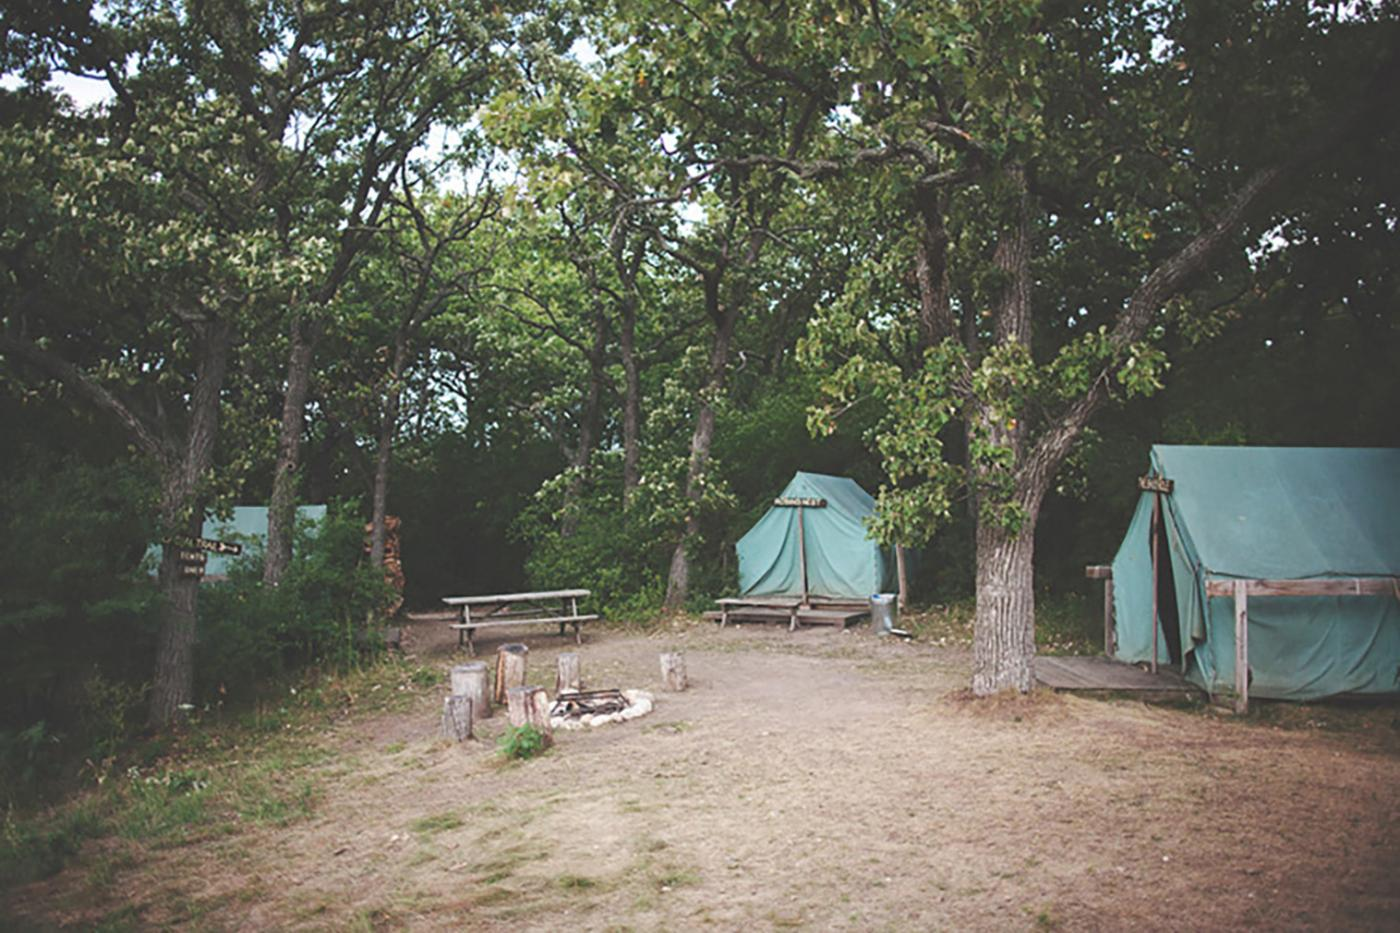 The perfect spot to for a summer campsite - Camp Wandawega, Wisconsin.